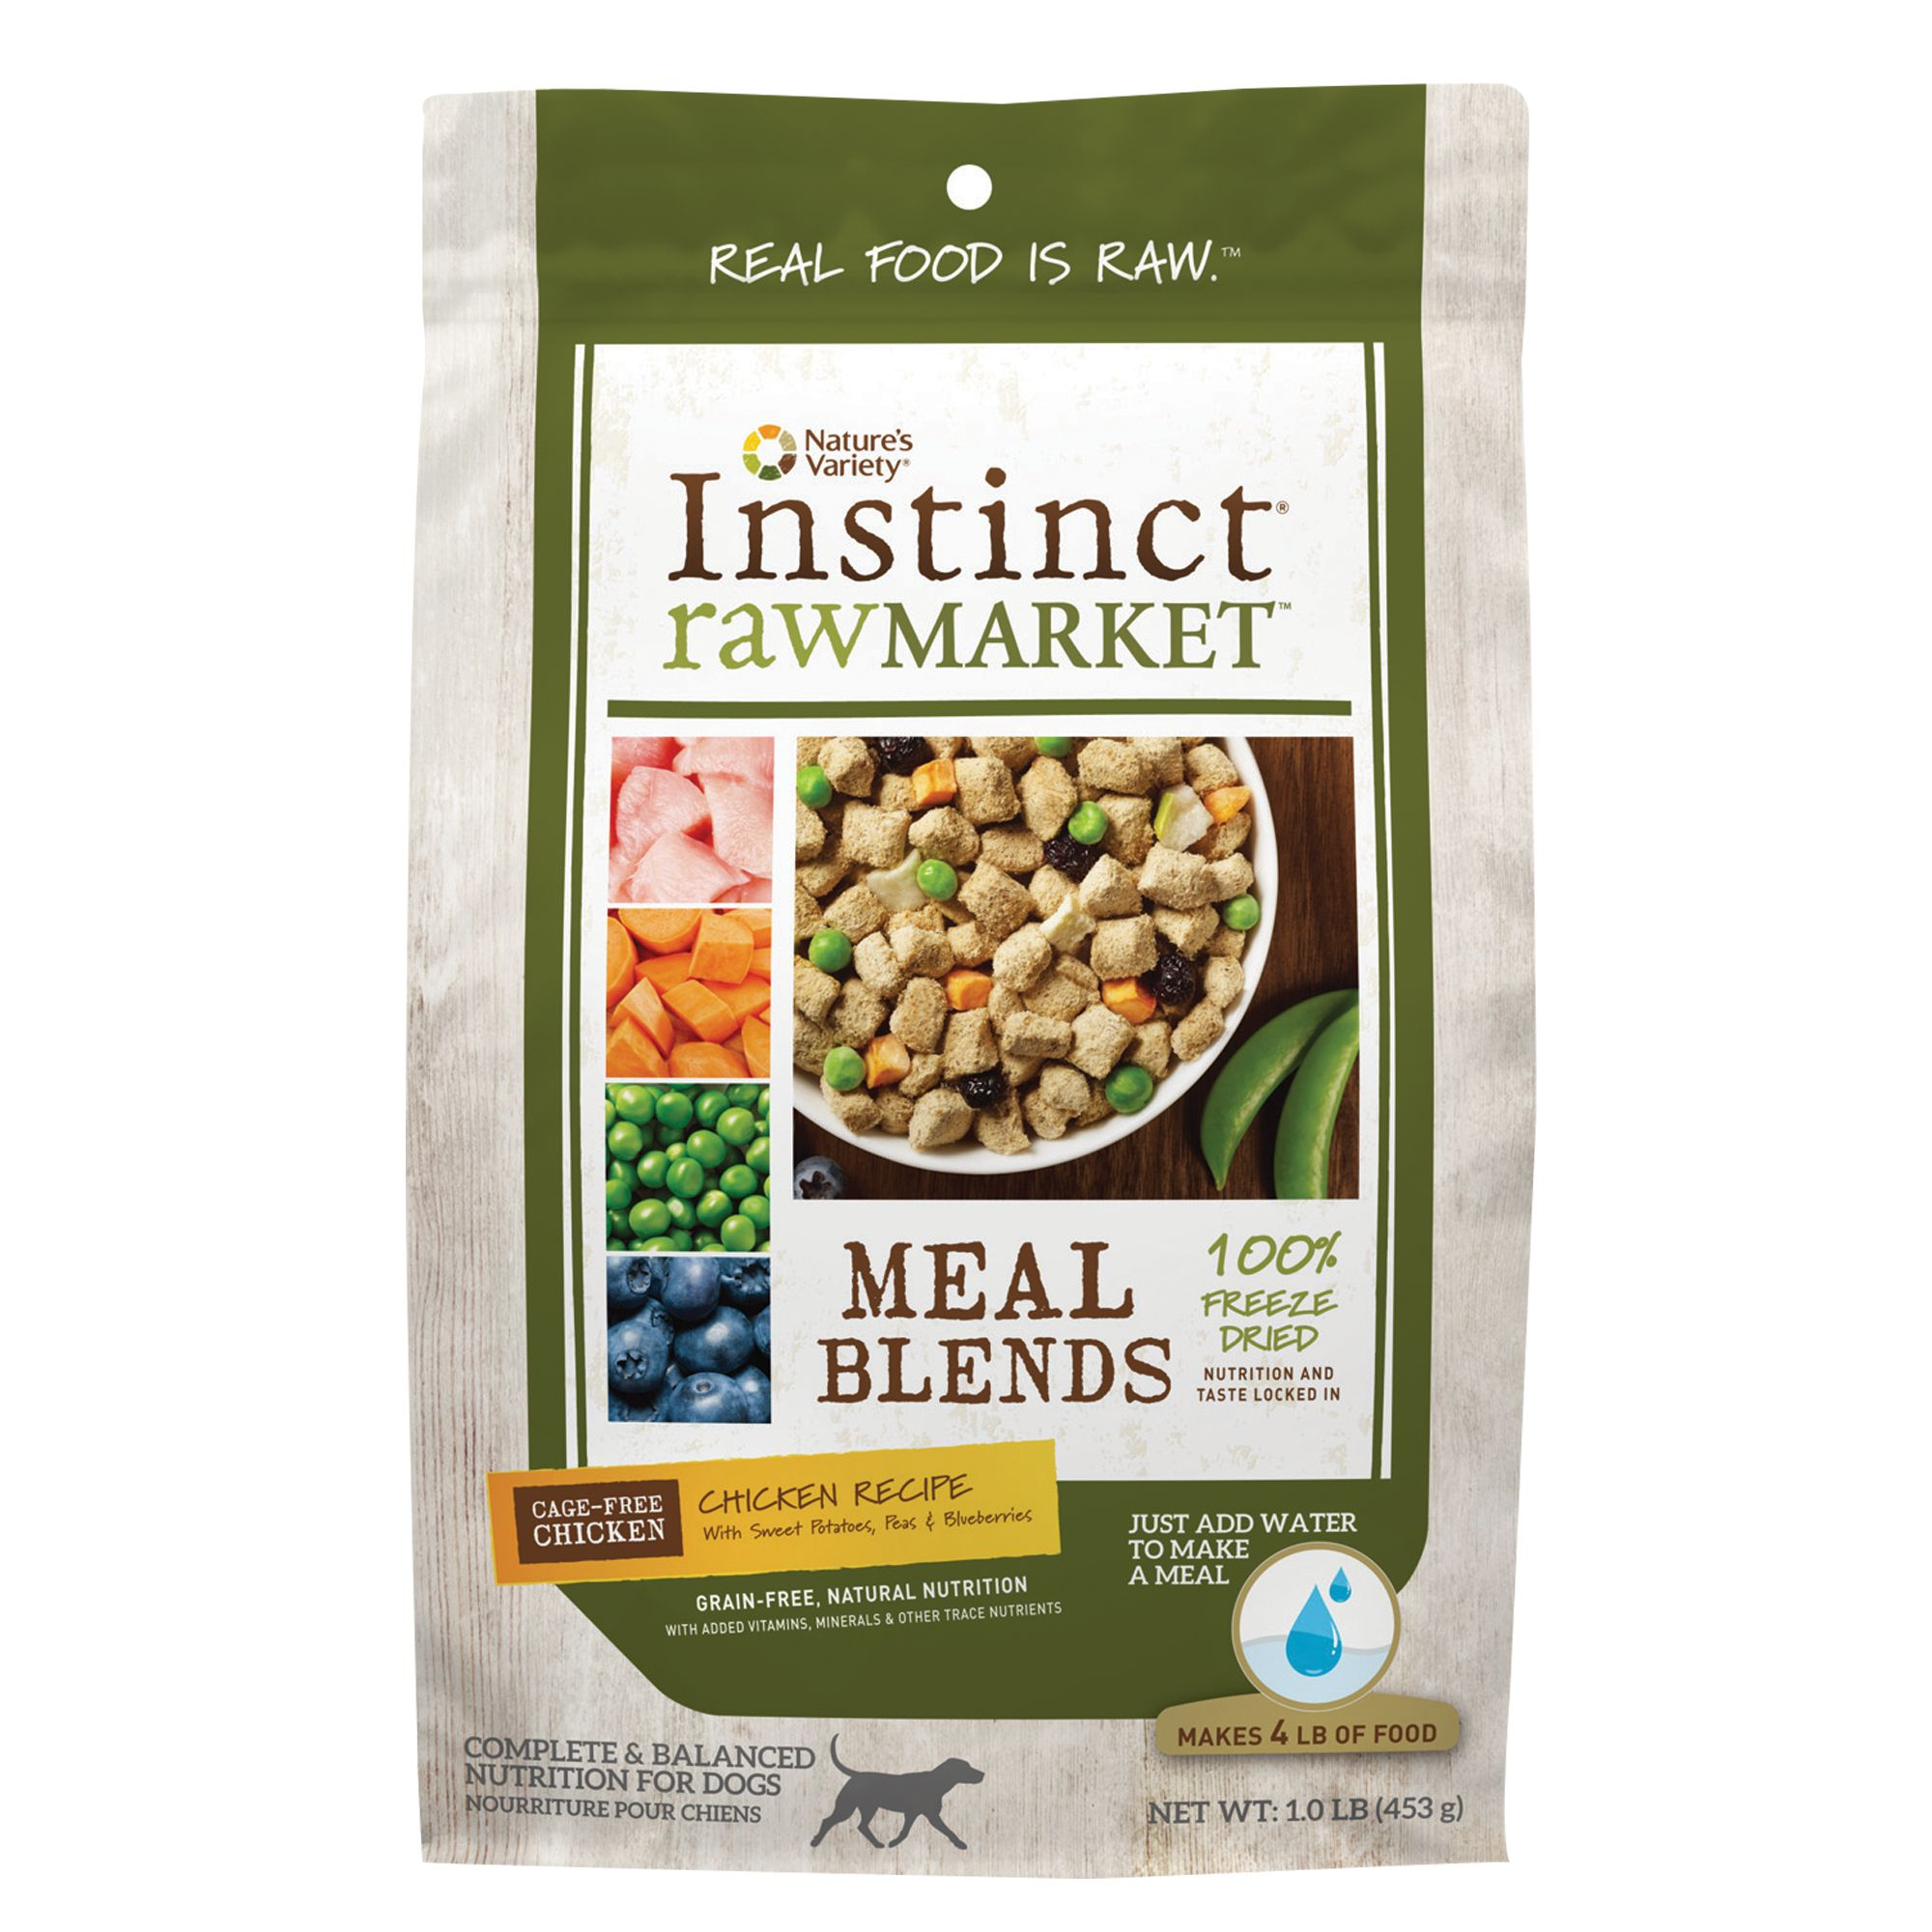 Nature's Variety® Instinct® Raw Market Meal Blends Dog Food - Grain Free, Freeze Dried, Chicken size: 16 Oz 5258785